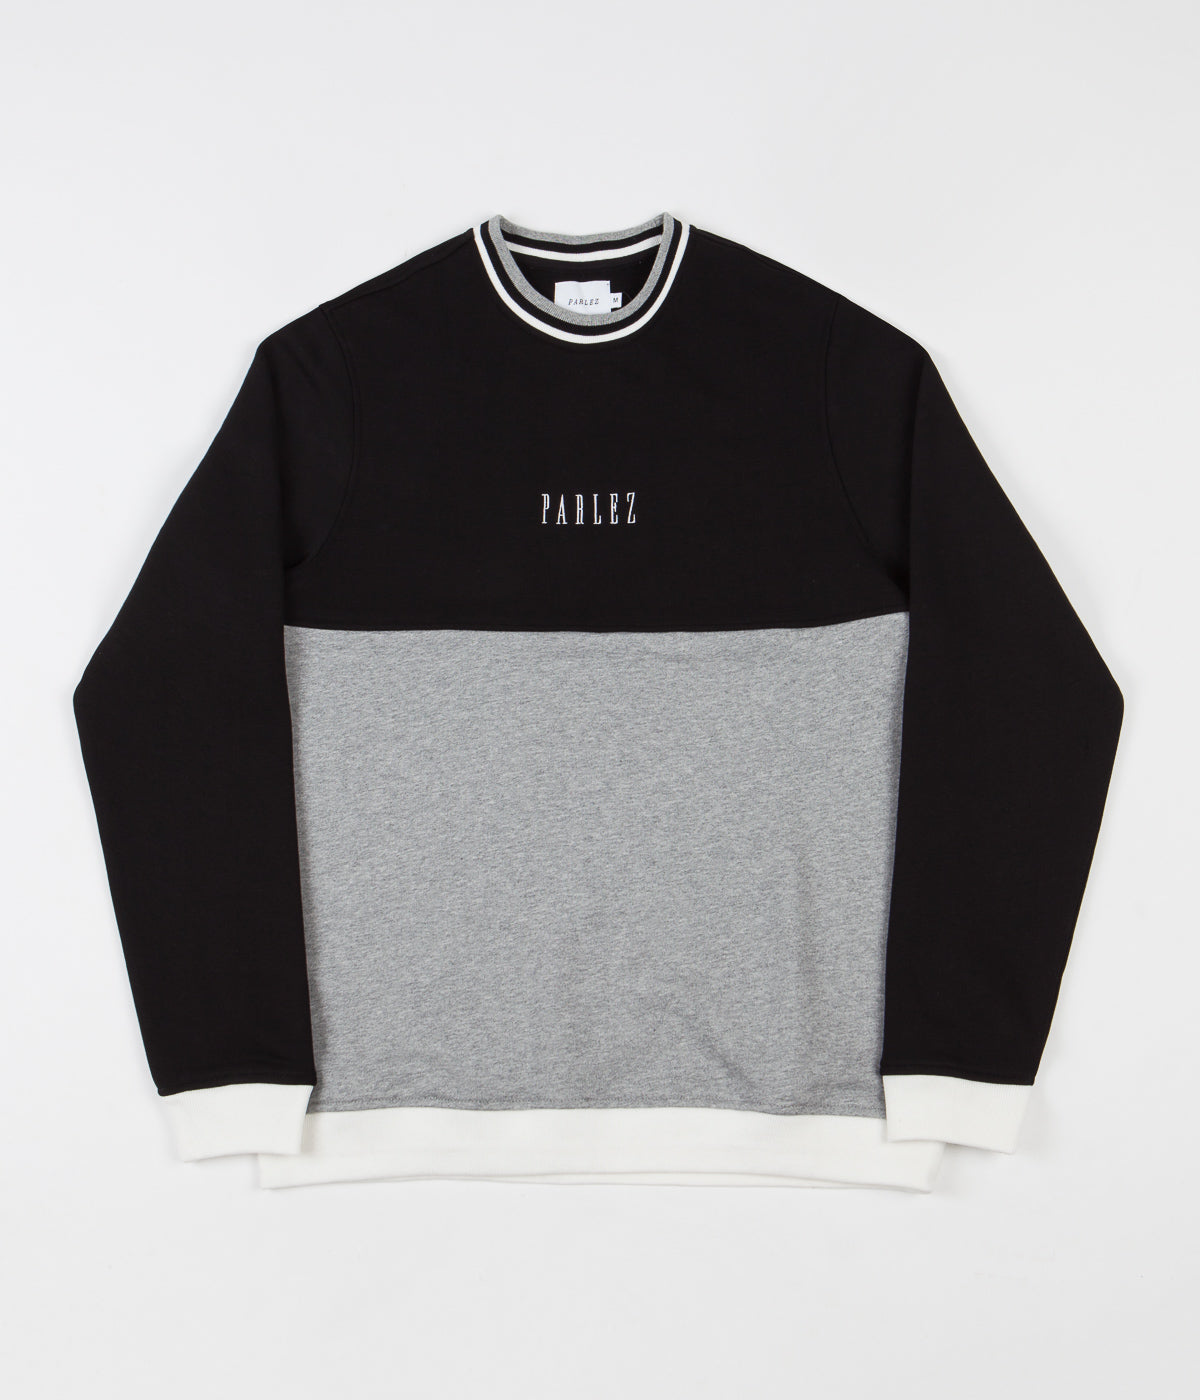 Parlez Vang Crewneck Sweatshirt - Heather